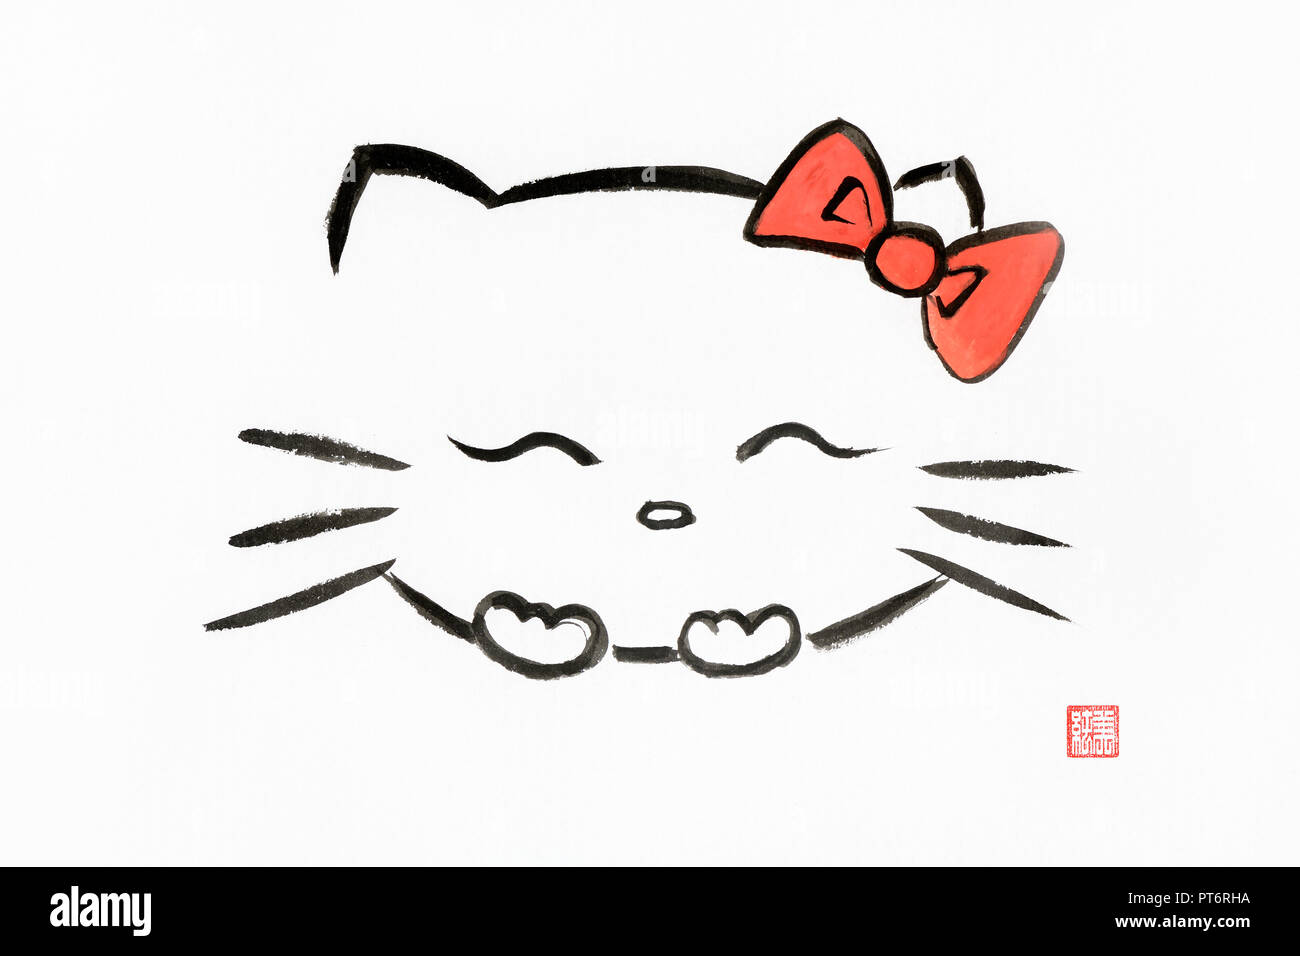 Hello kitty, happy giggling japanese kawaii cartoon character with a red bow. Artistic oriental style illustration, Japanese Zen Sumi-e ink painting o - Stock Image